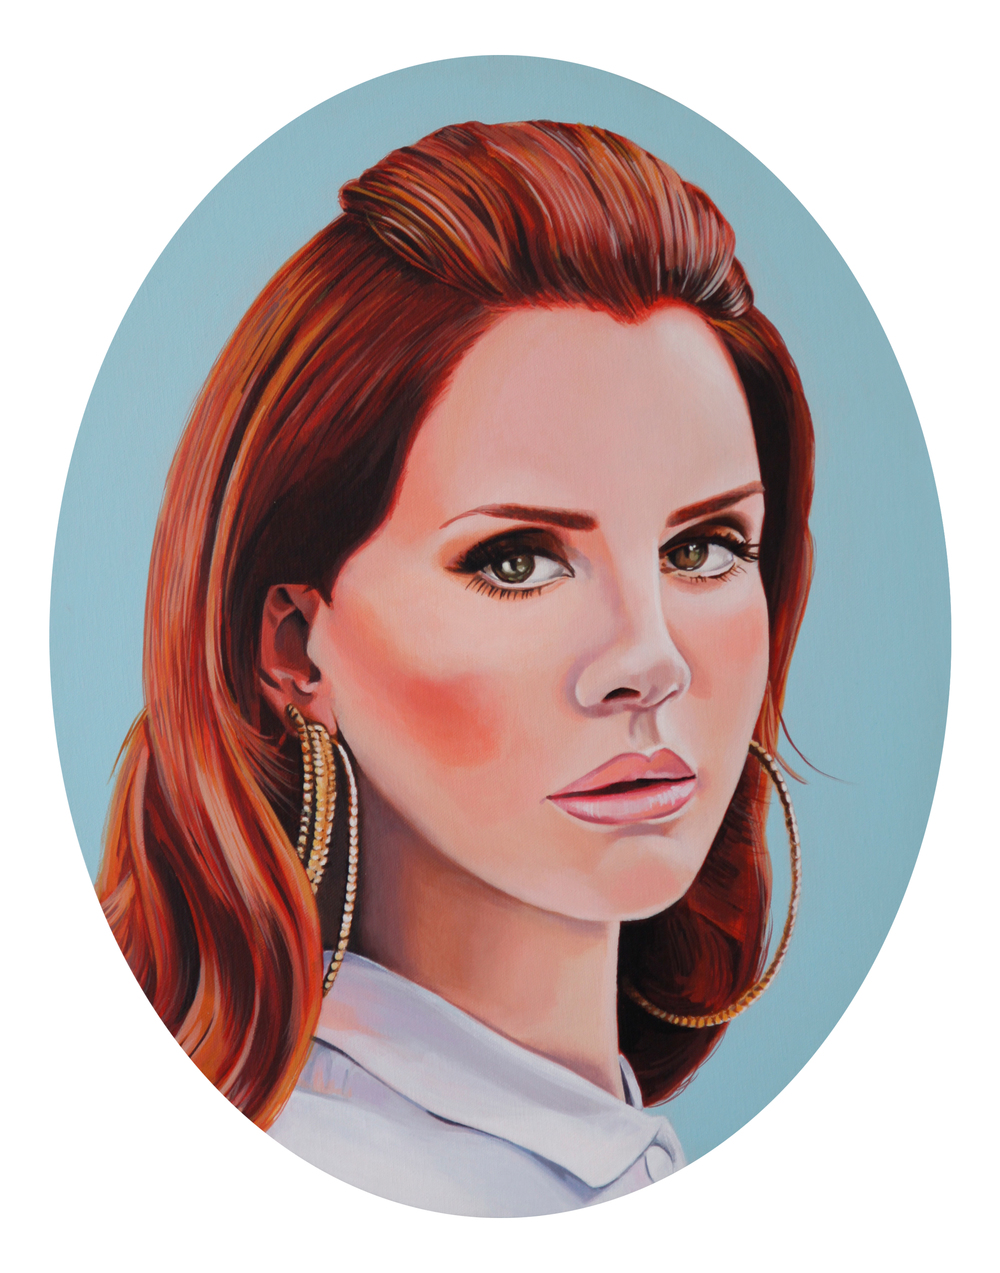 Lana, 2014, Acrylic on canvas